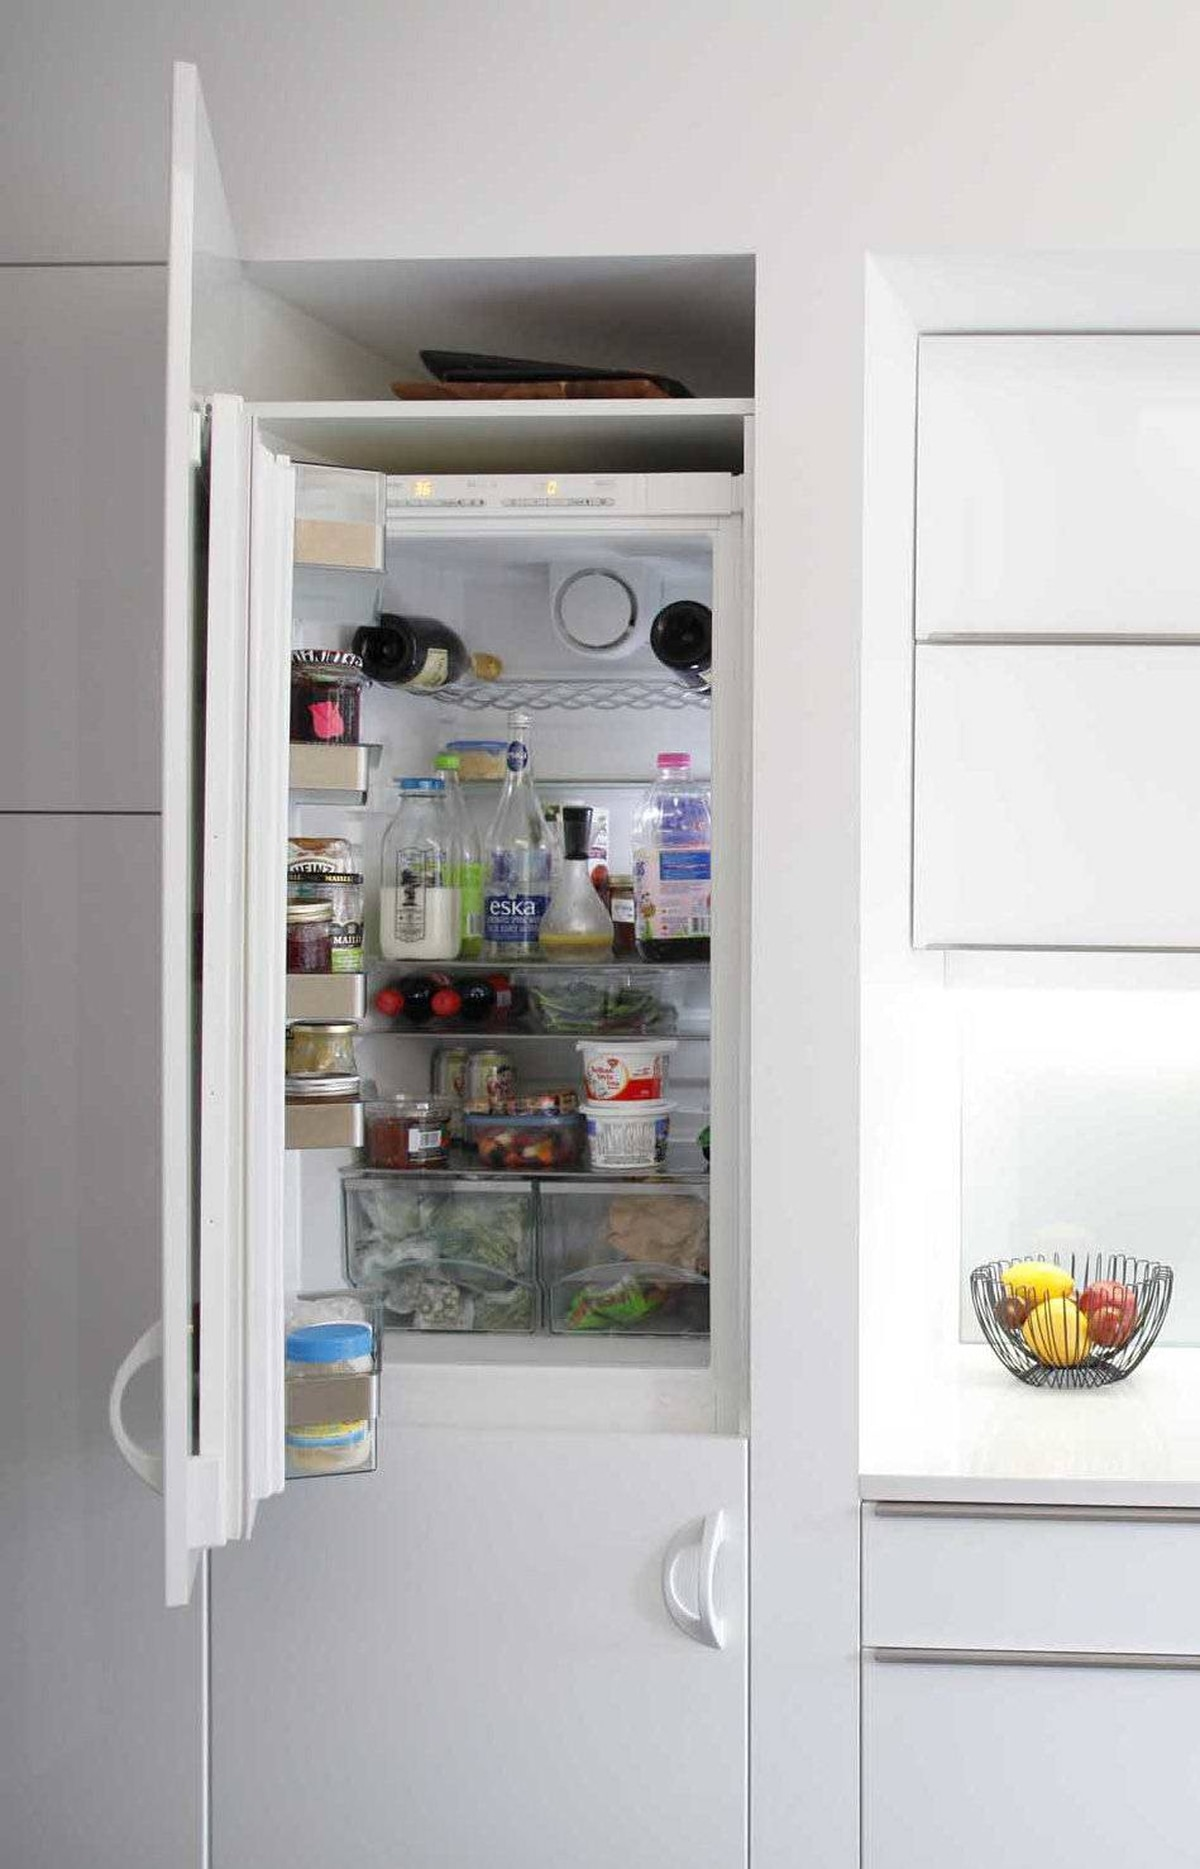 The refrigerator is hidden behind high-gloss IKEA cabinetry to keep visual clutter to a minimum.